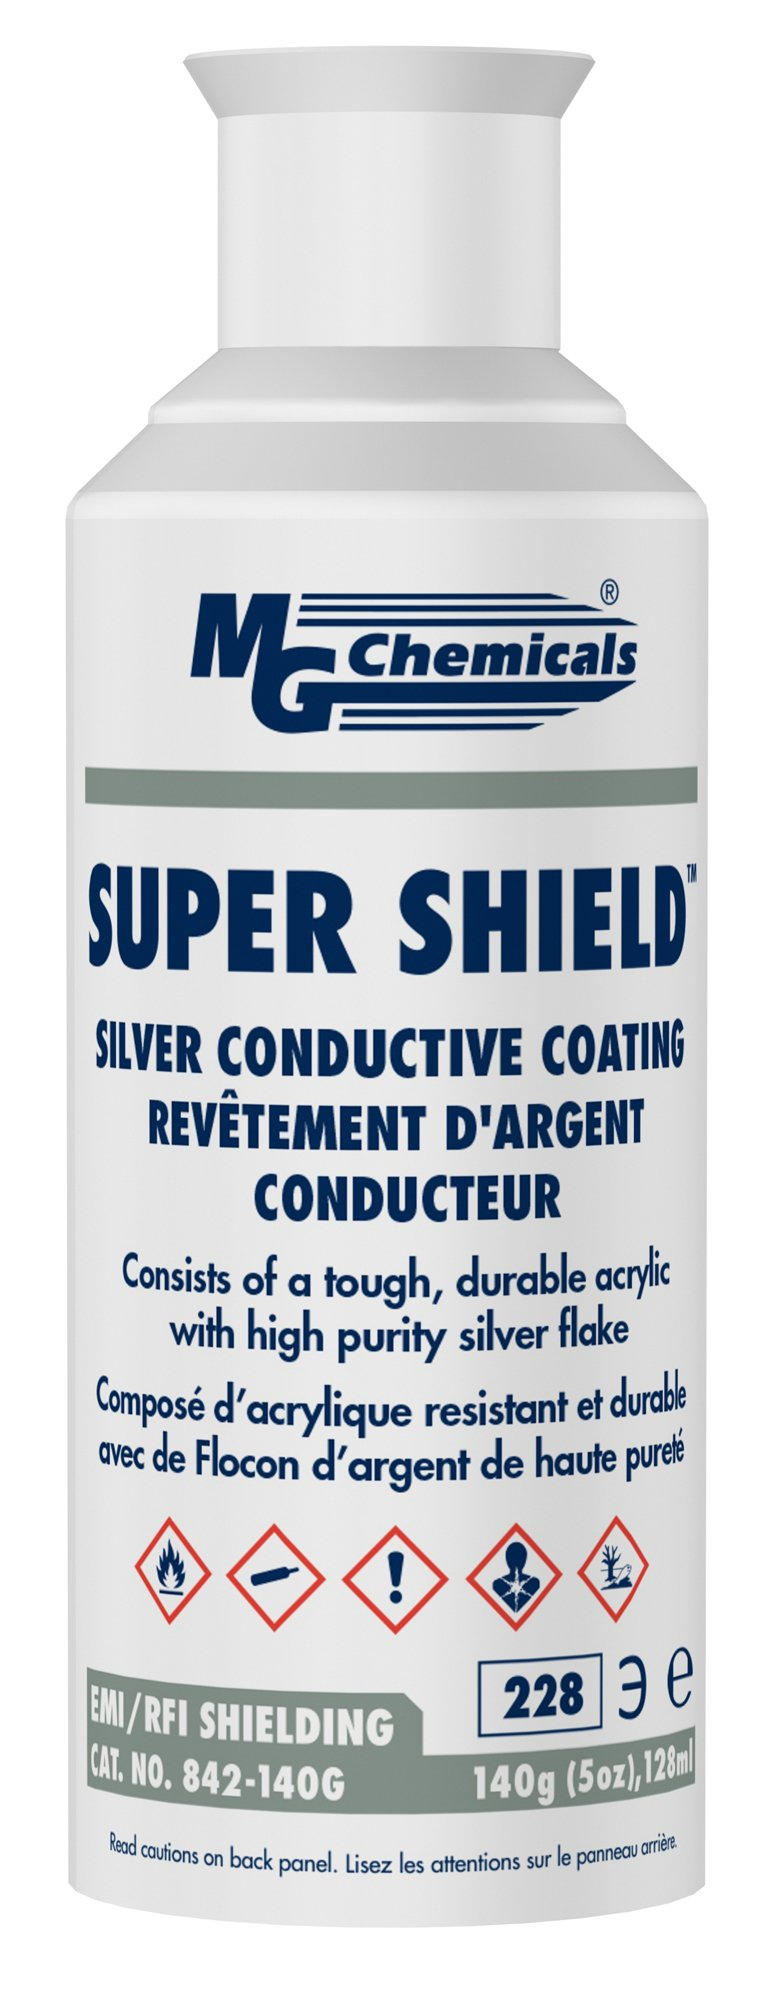 MG Chemicals Super Shield Silver Conductive Coating, 5 oz, Aerosol Can